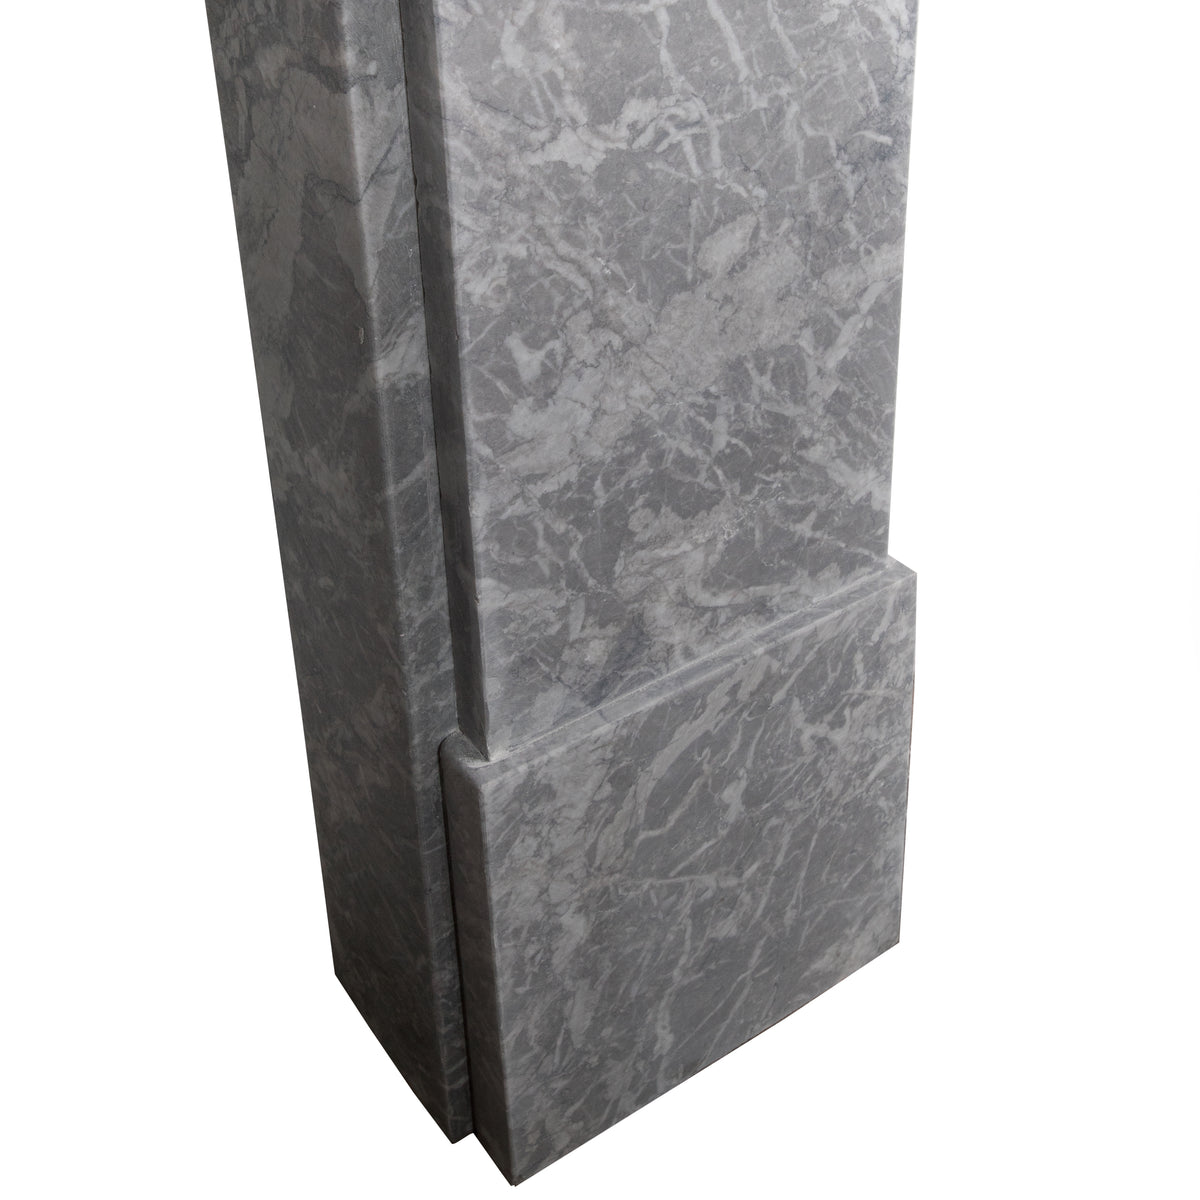 Victorian Style Grey Marble Fireplace Surround | The Architectural Forum